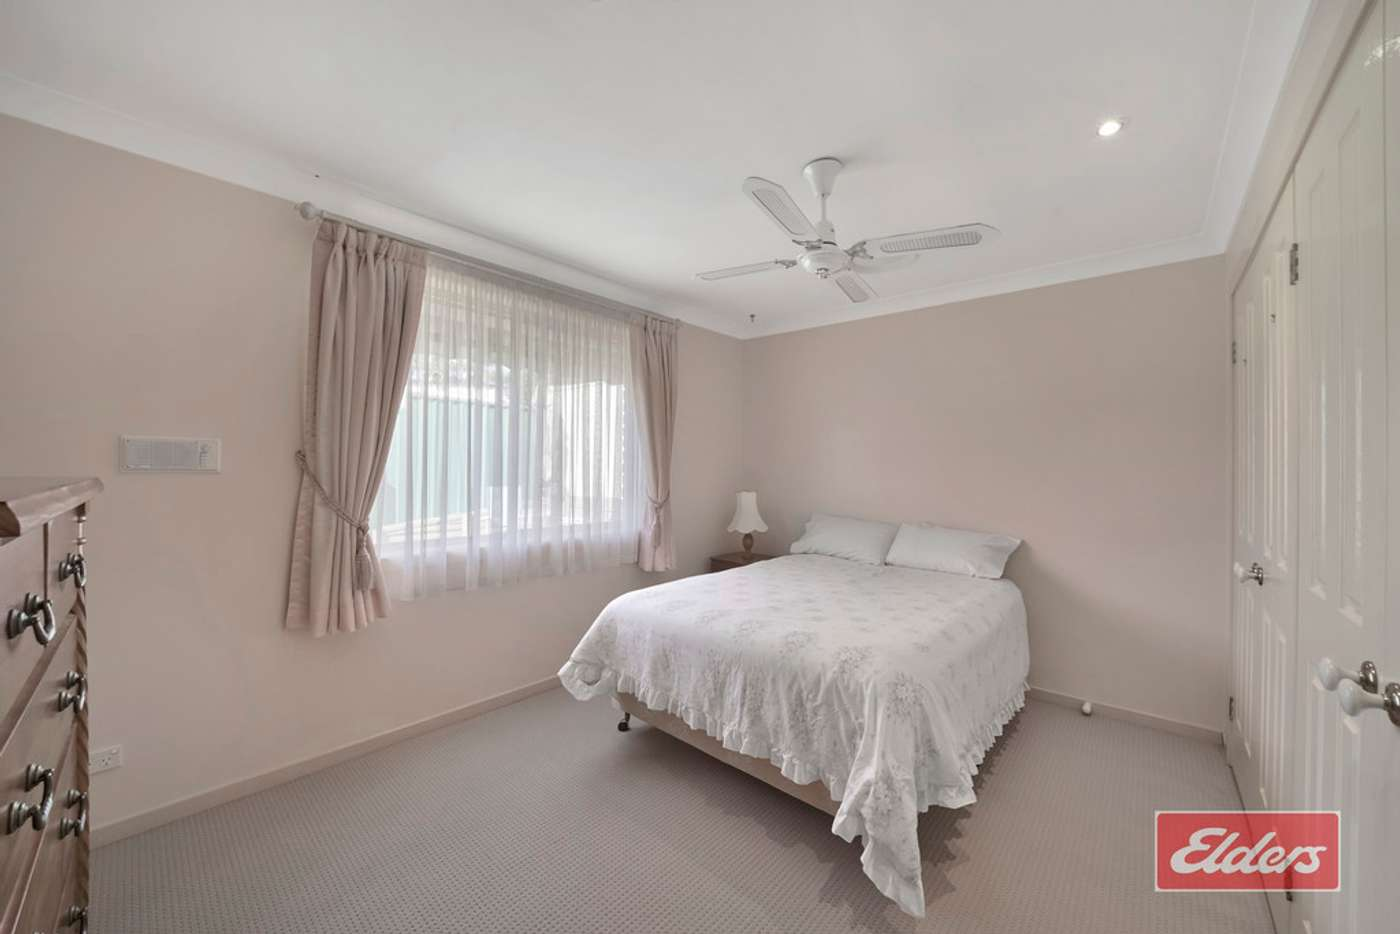 Seventh view of Homely house listing, 2 YALLAMBI STREET, Picton NSW 2571